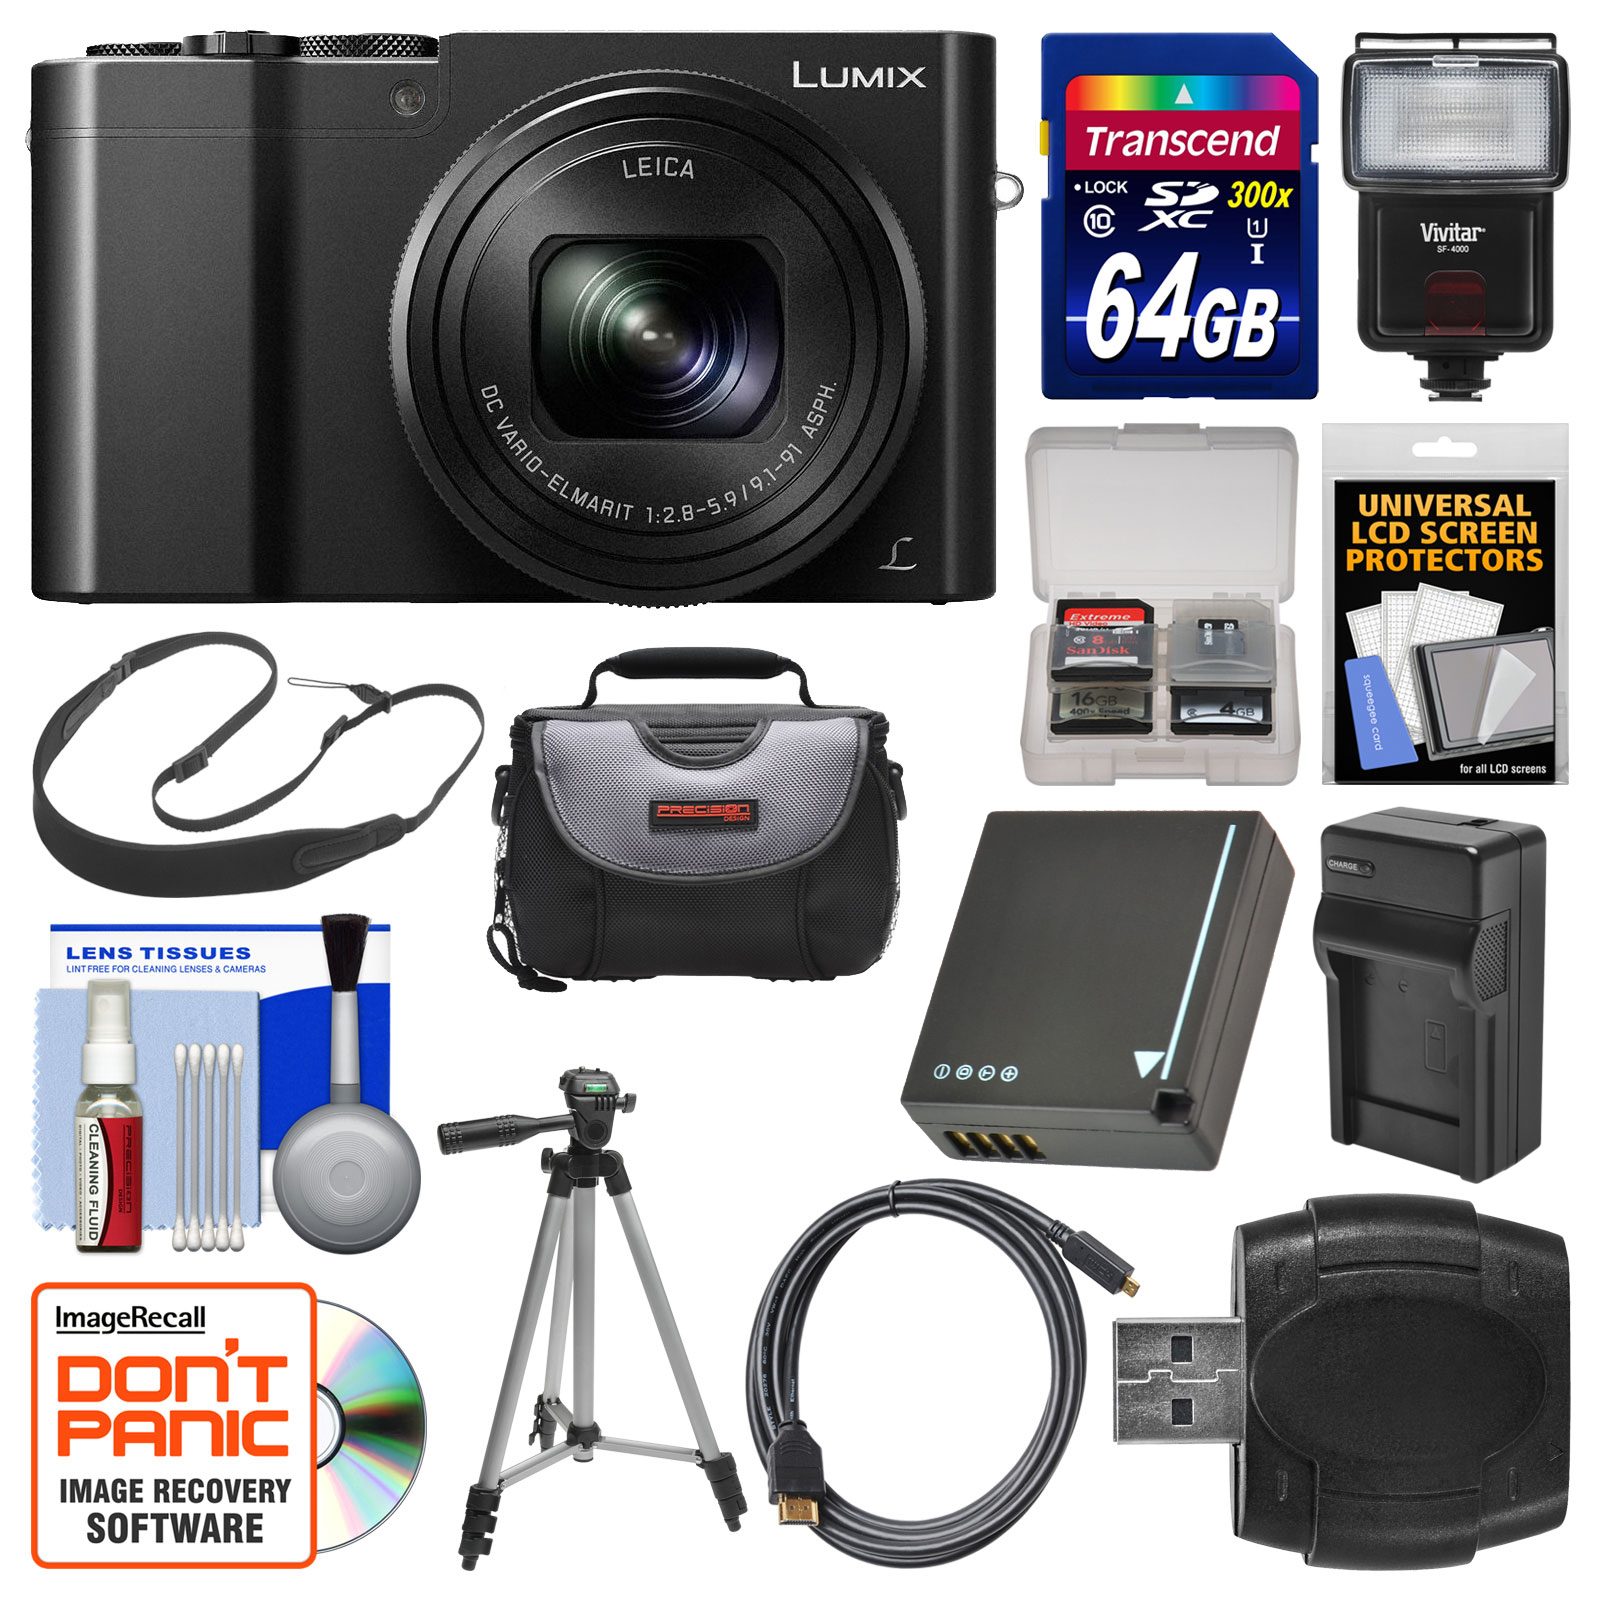 Panasonic Lumix DMC-ZS100 4K Wi-Fi Digital Camera (Silver) with 64GB Card + Case + Flash + Battery & Charger + Tripod + Strap + Kit